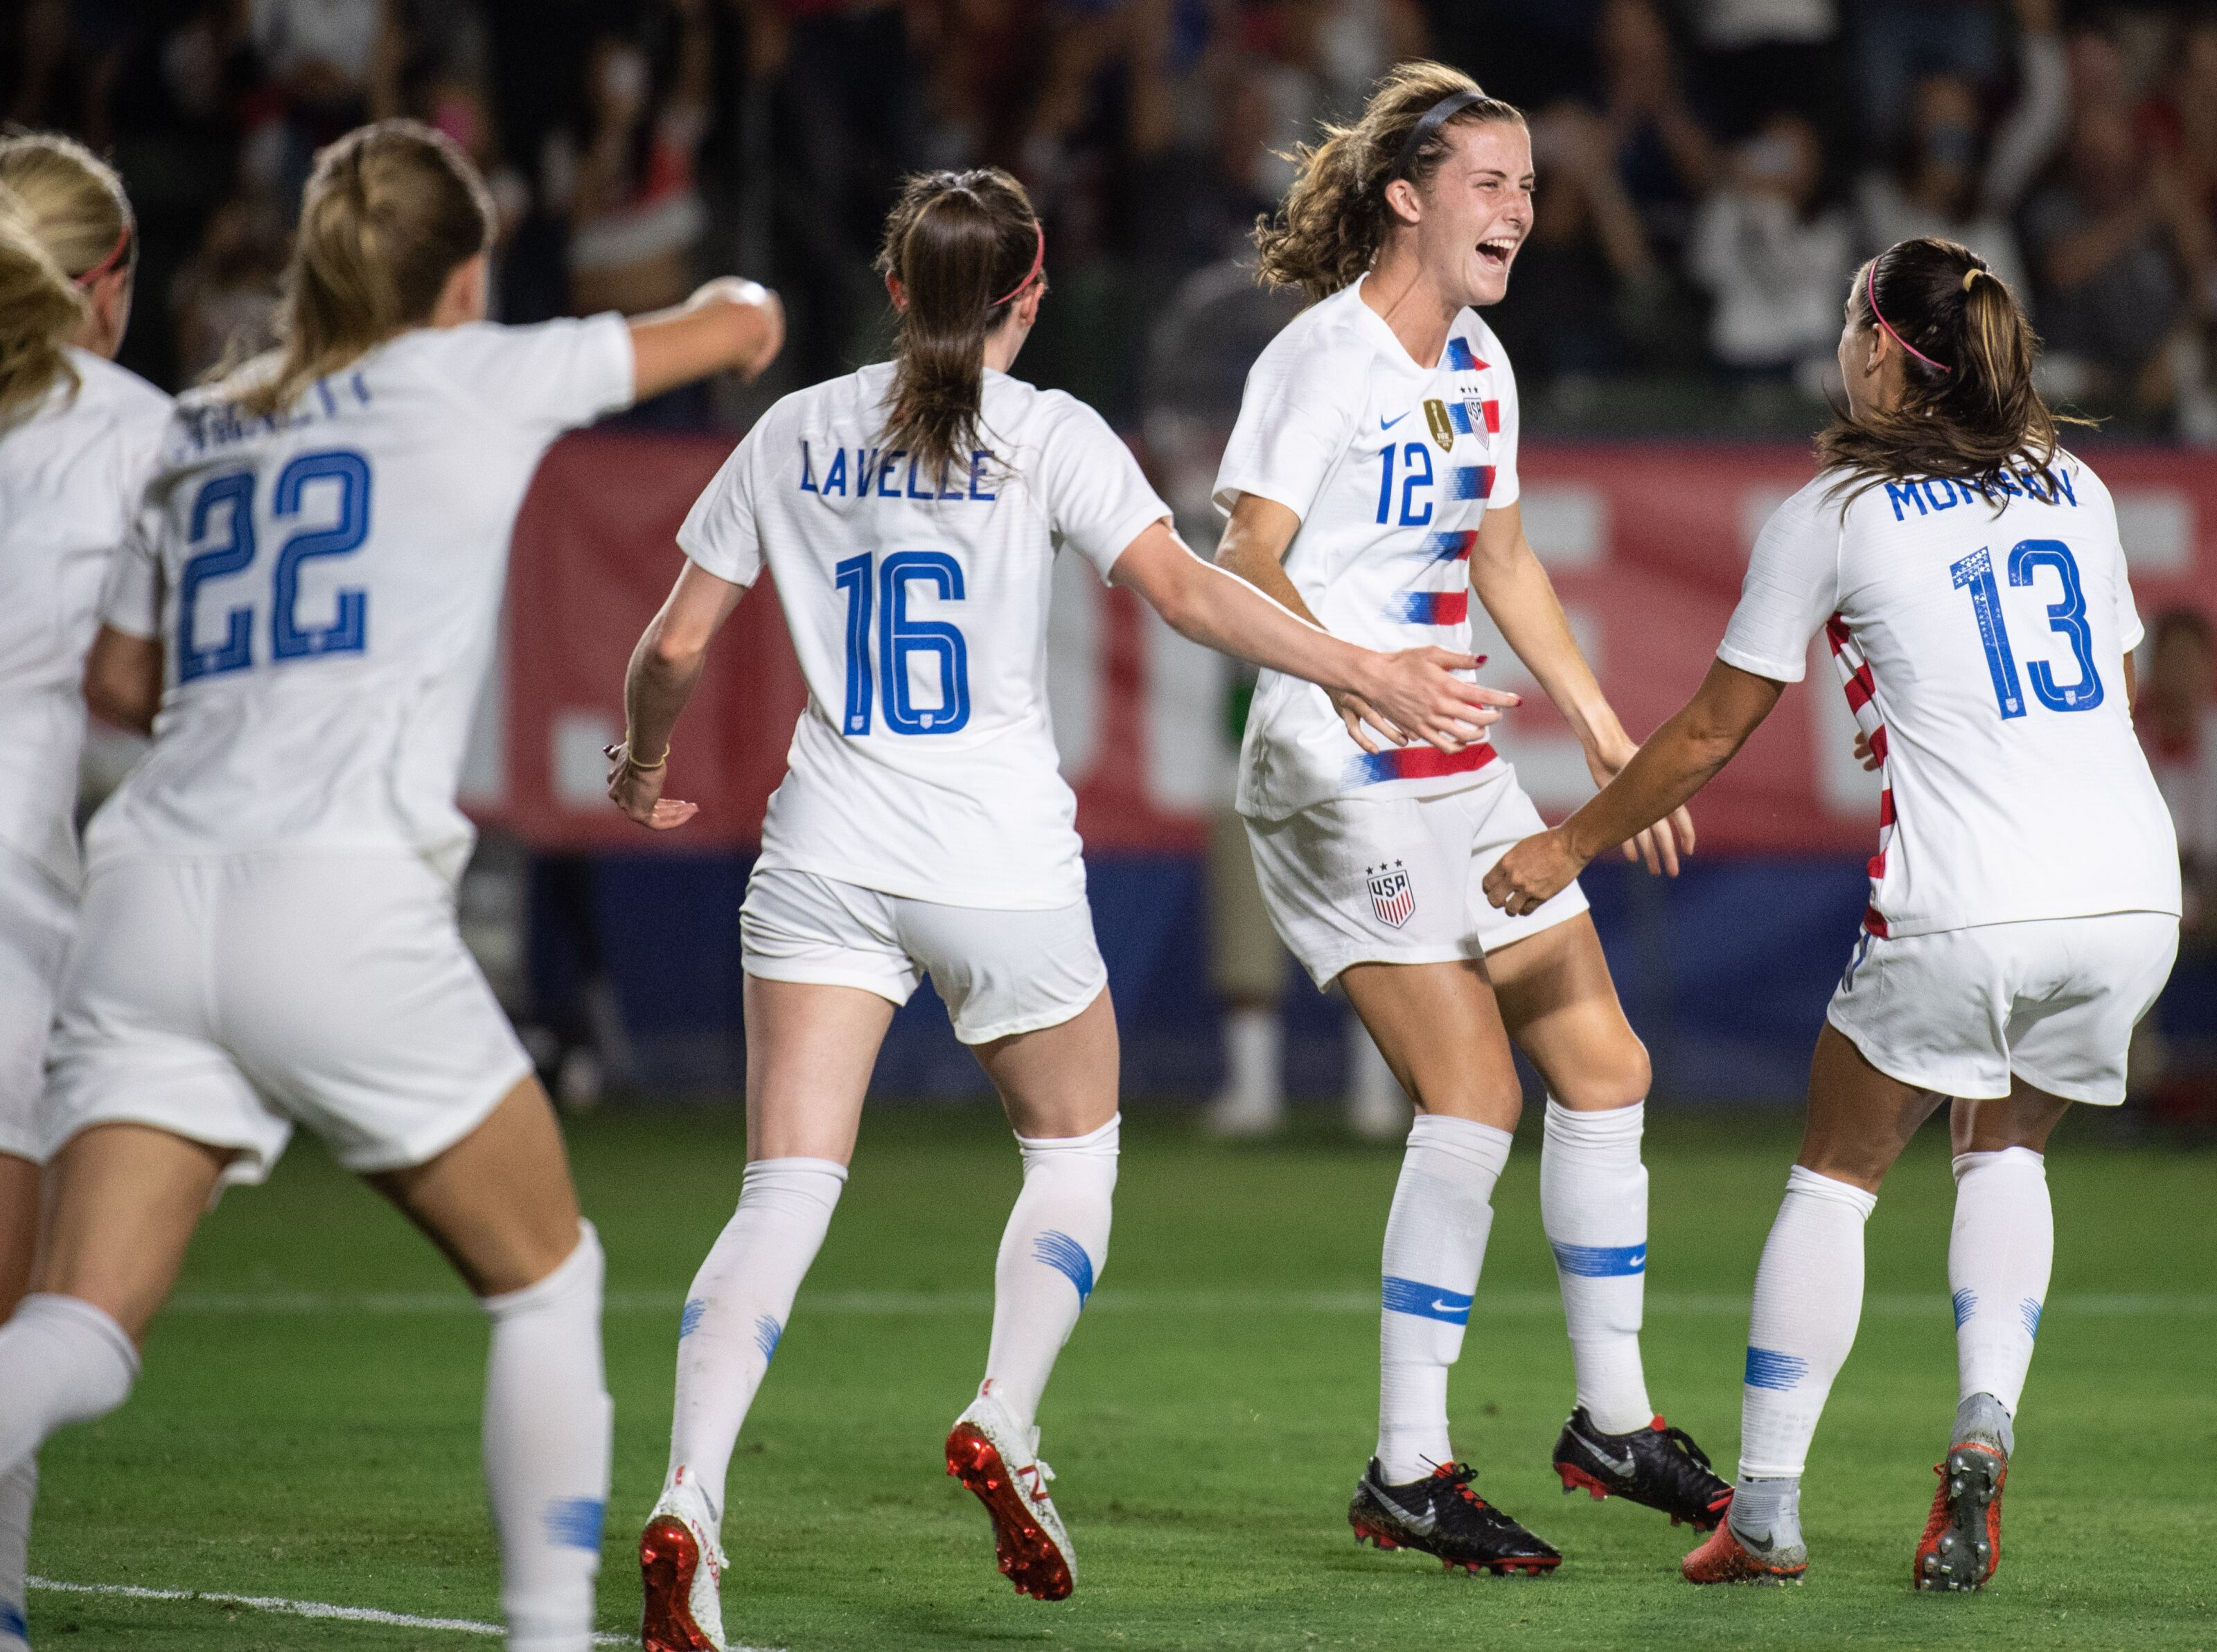 CARSON, CA - AUGUST 31: The United States team celebrate defender Tierna Davidson's goal during a friendly international soccer match between Chile and United States on August 31, 2018 at StubHub Center in Carson, CA. (Photo by Kyusung Gong/Icon Sportswire via Getty Images)